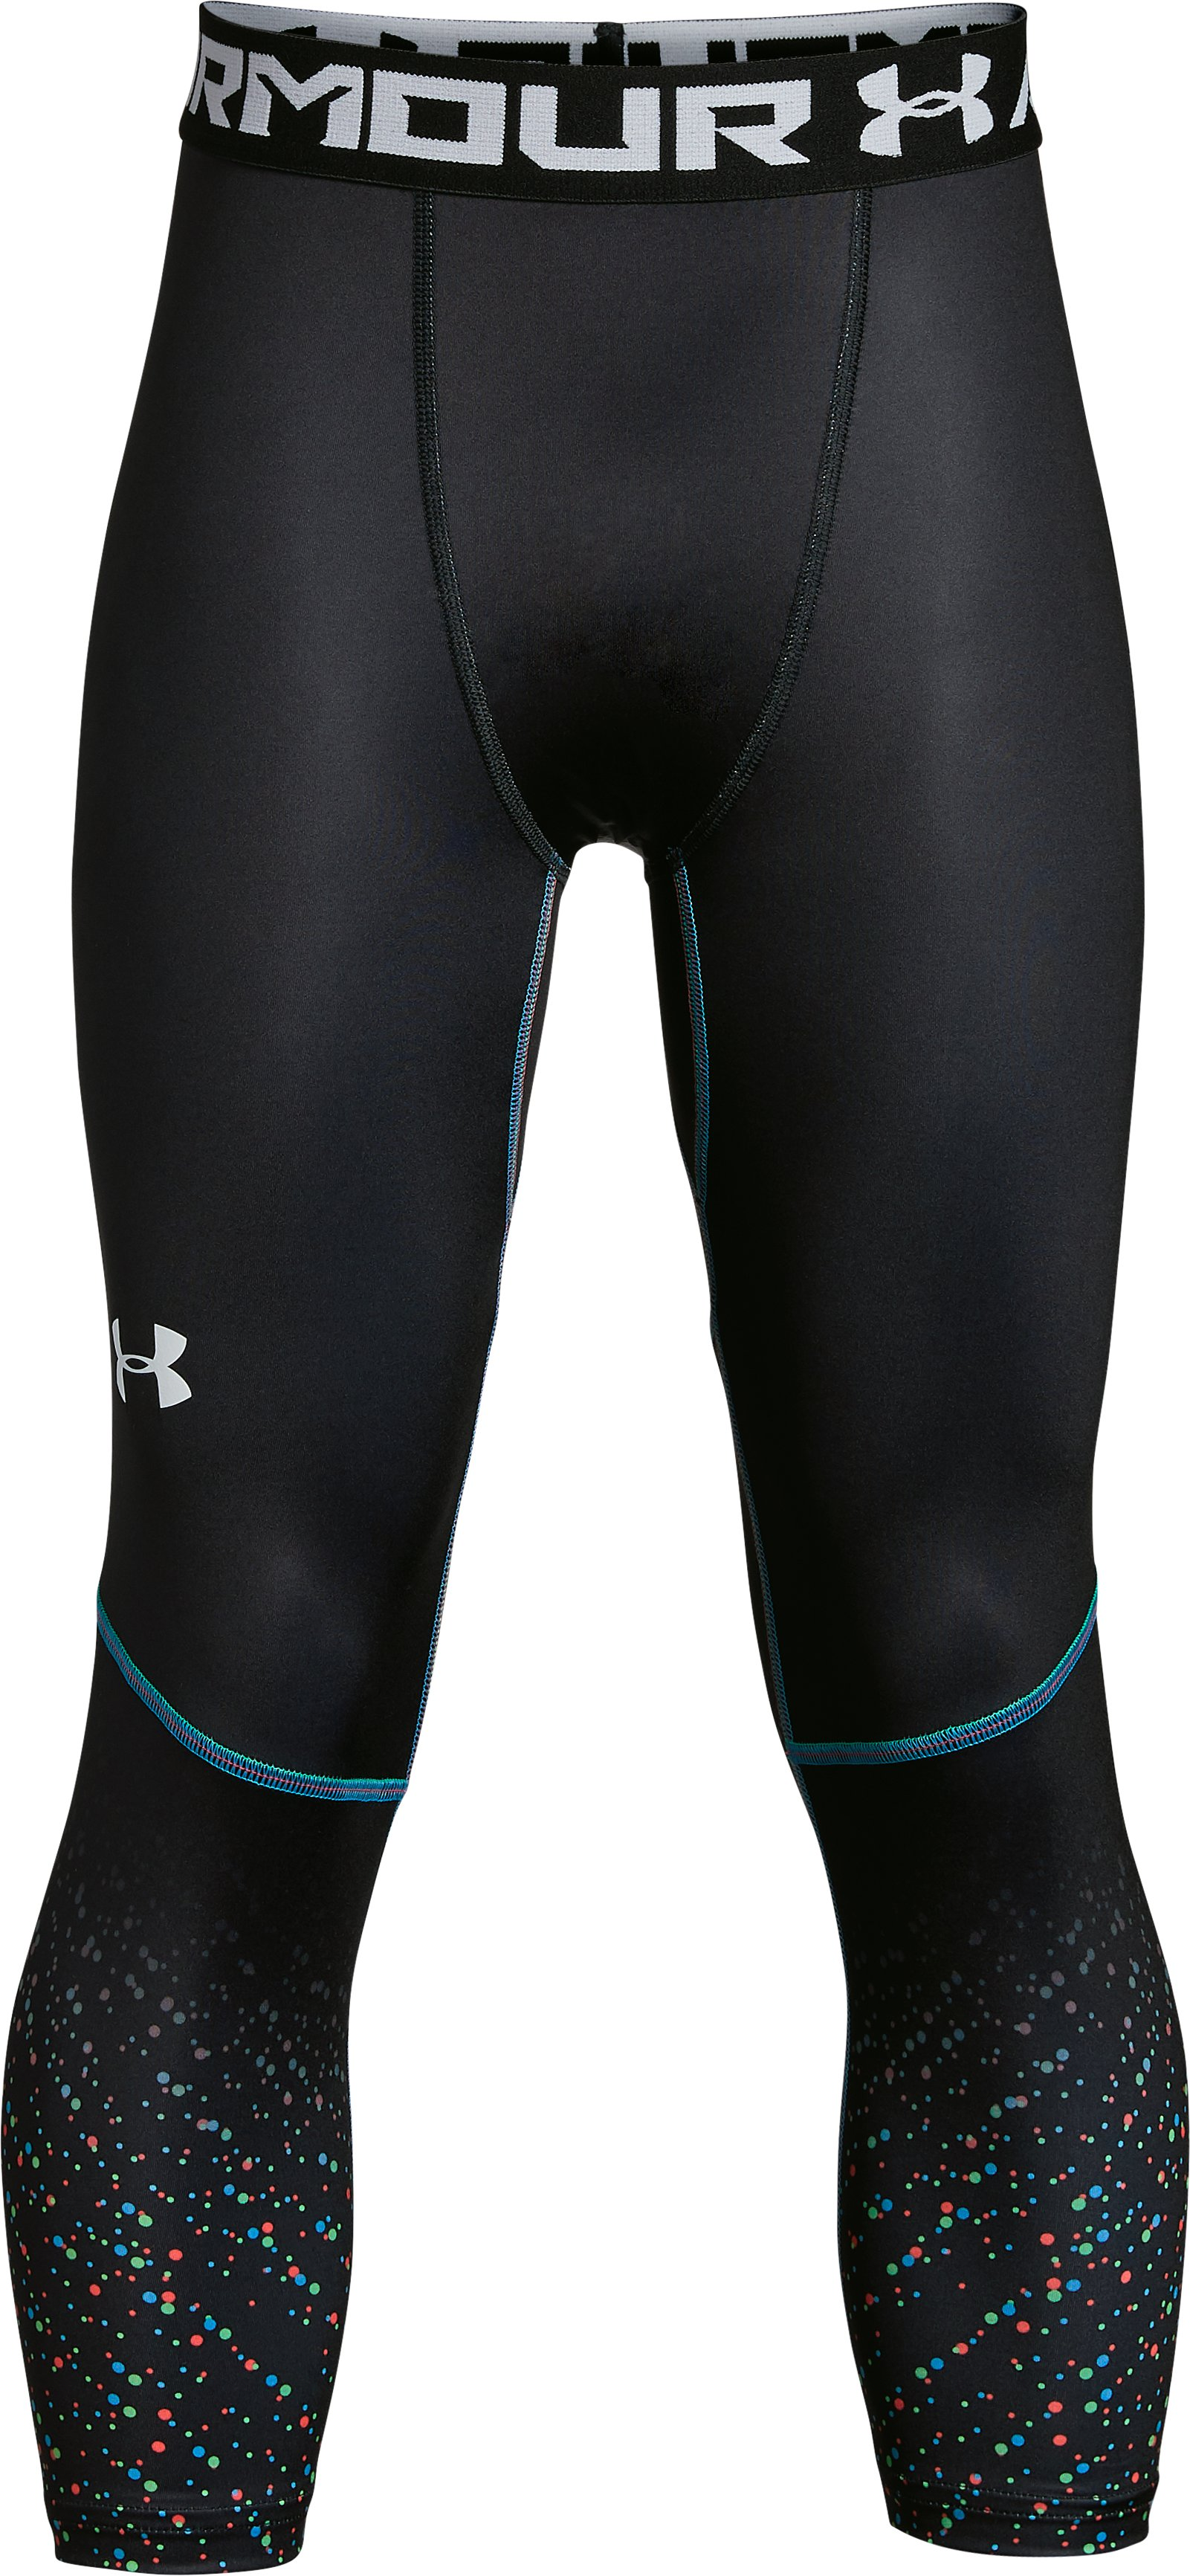 Boys' SC30 Lights ¾ Leggings, Black